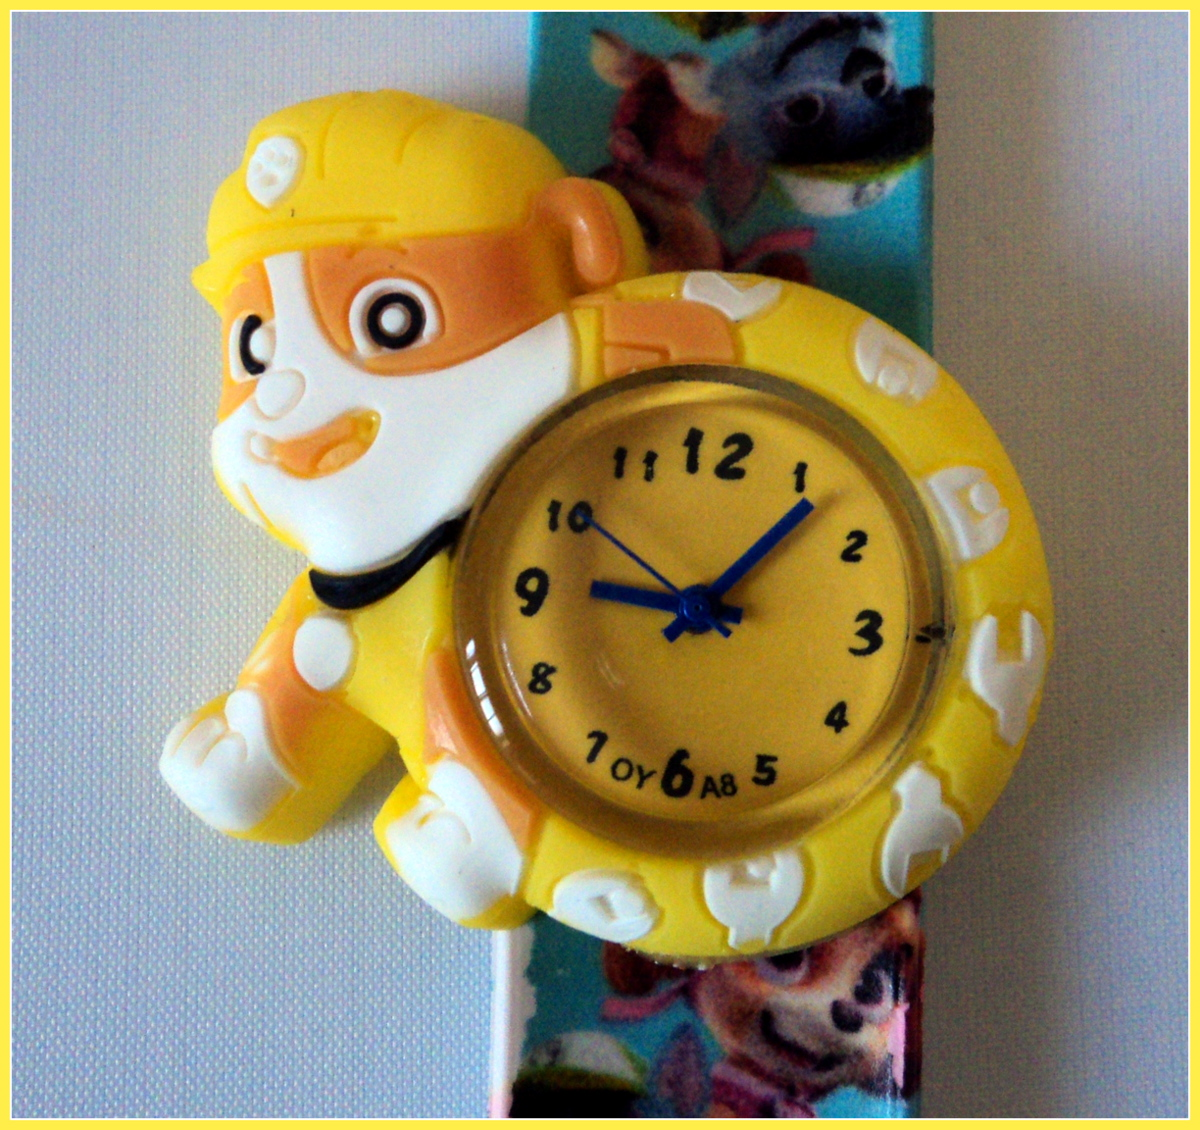 Paw Patrol - Rubble - Slap Watches Image